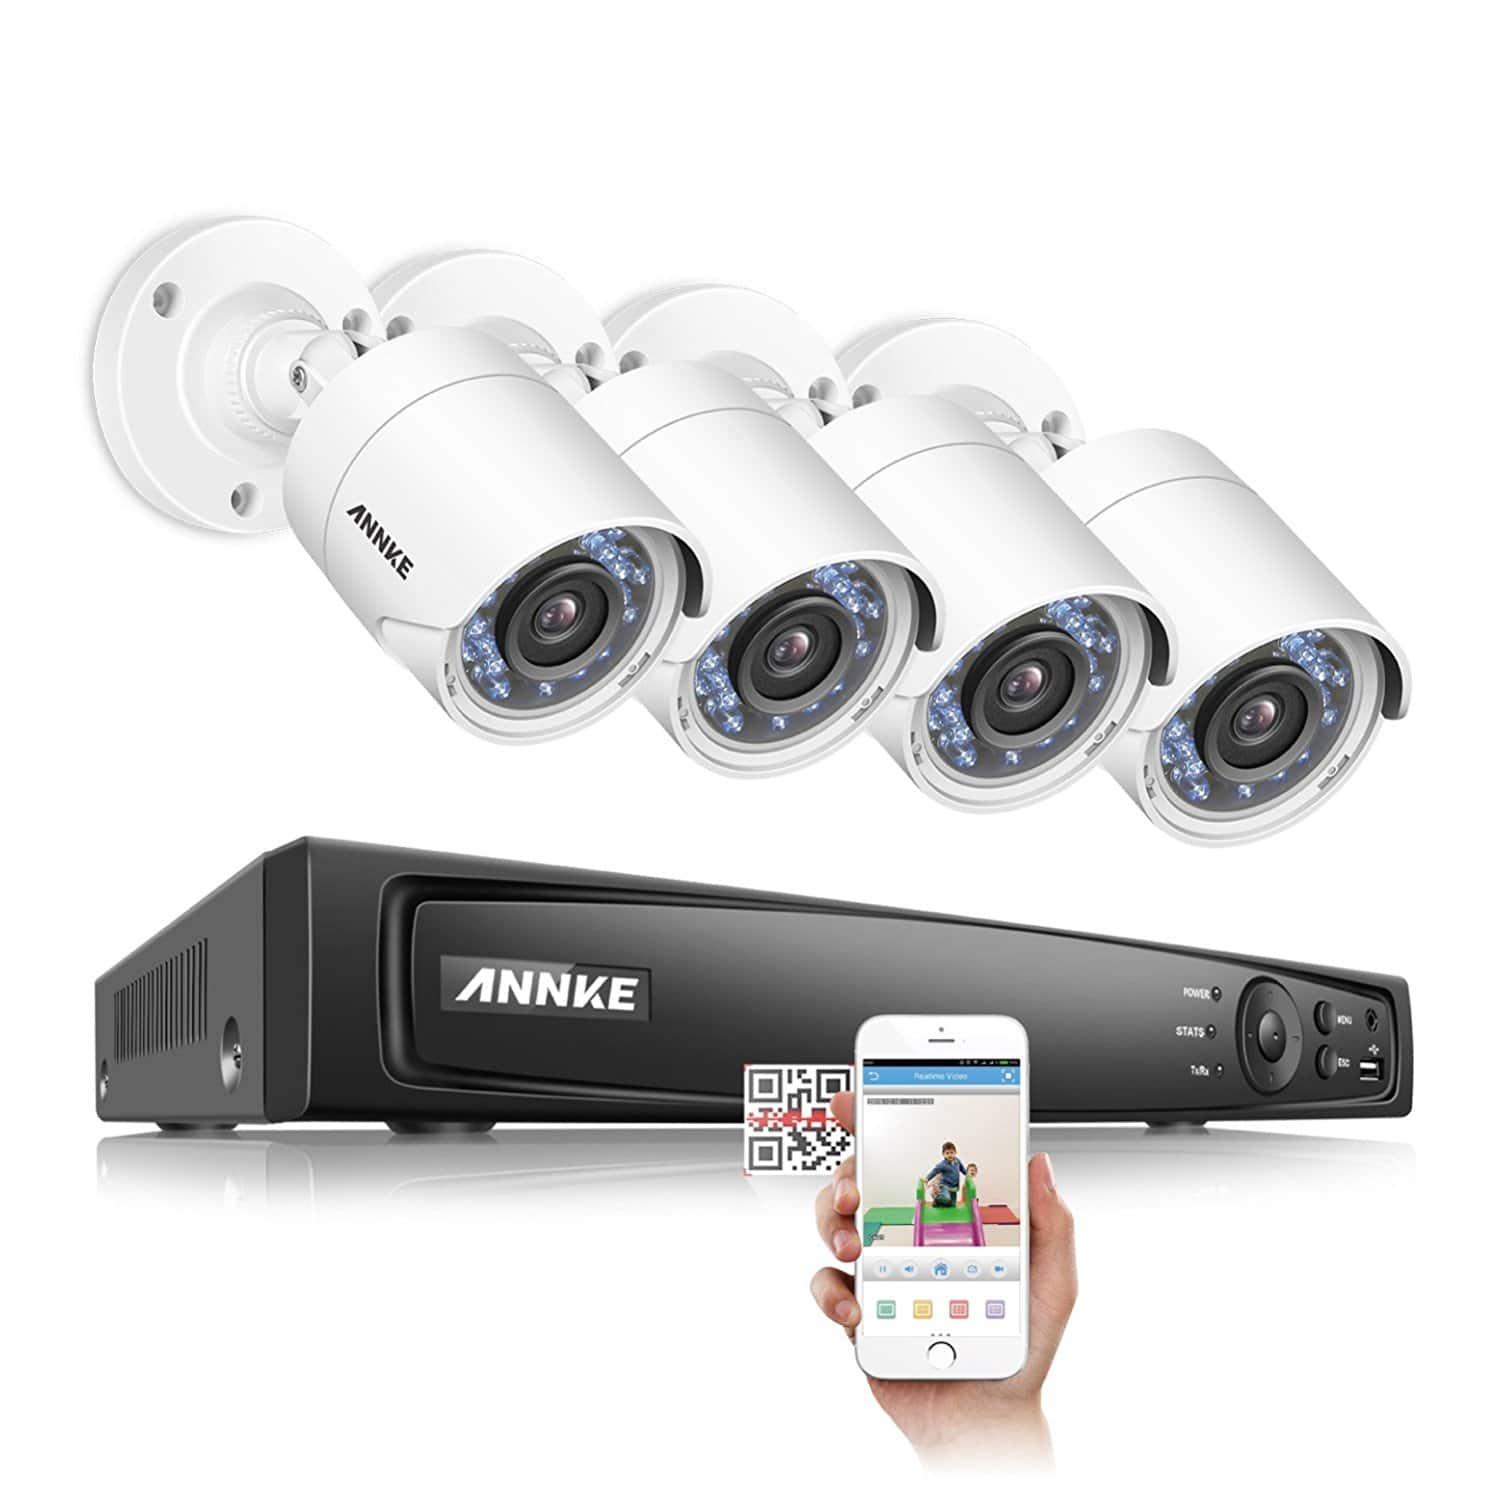 ANNKE 1080P Security Camera System H.264+ 8CH Video DVR and (4) 1920TVL 2.0MP Weatherproof Cameras $149.39